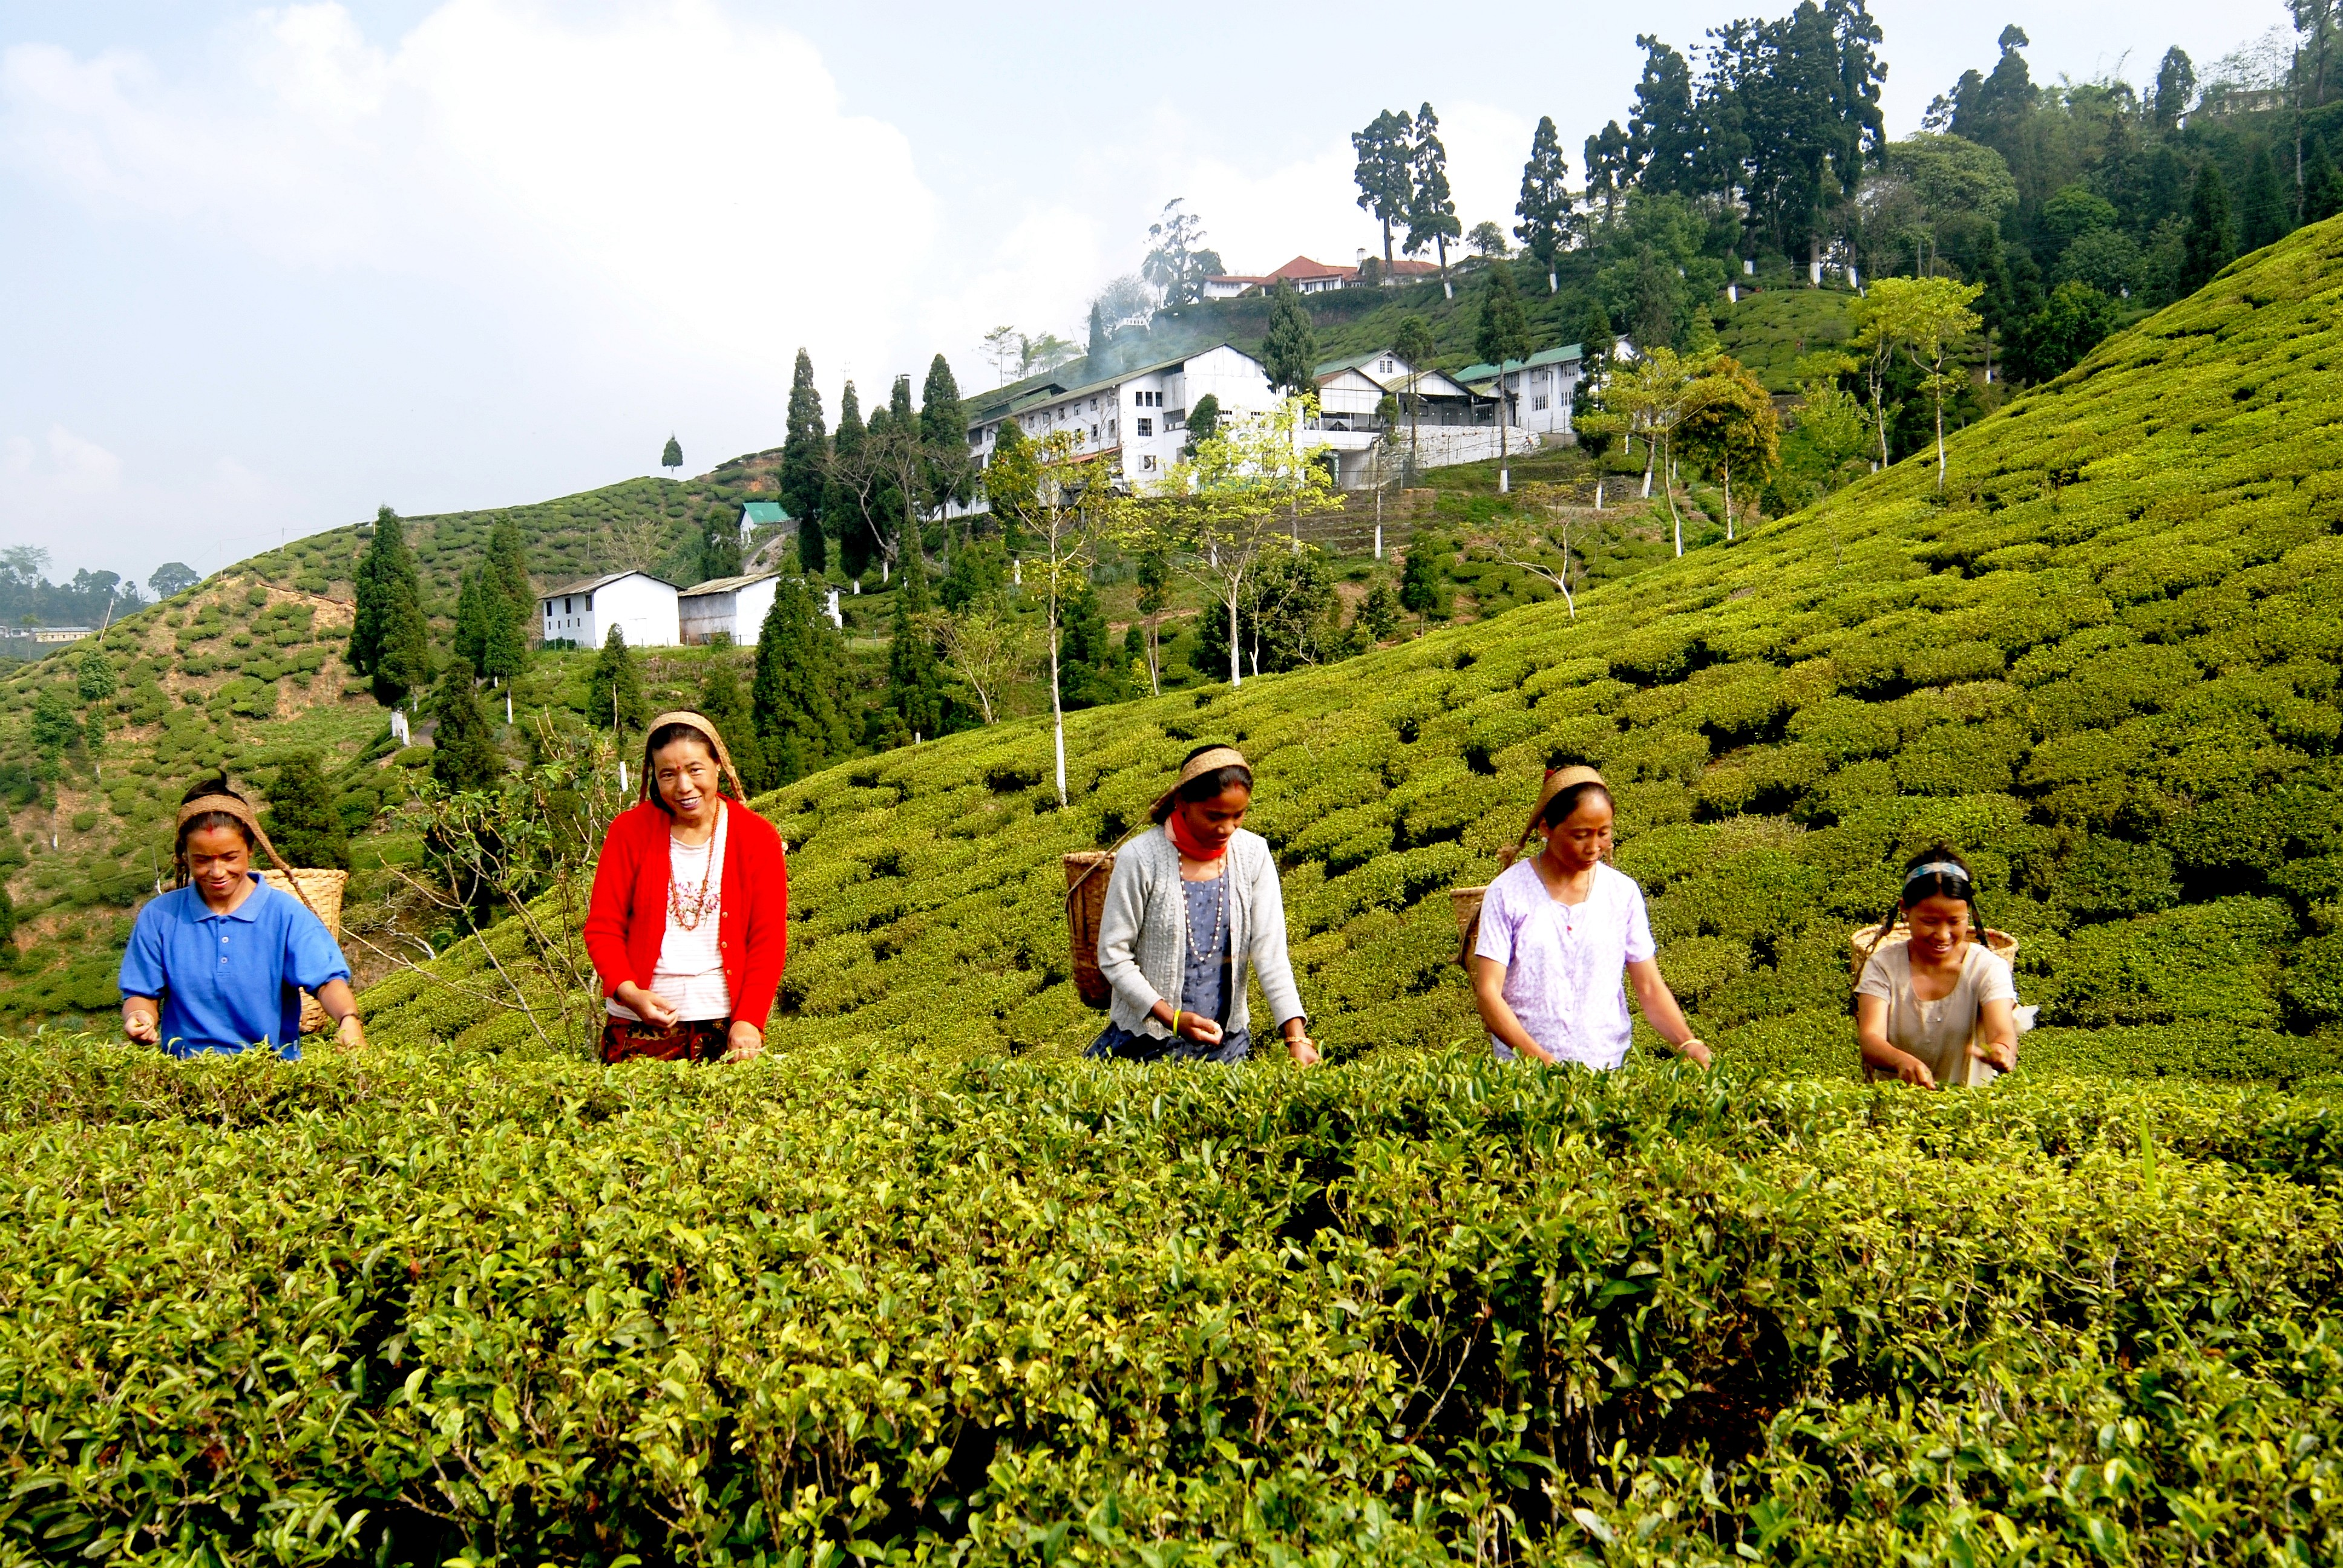 Description: darjeeling_tea.jpg